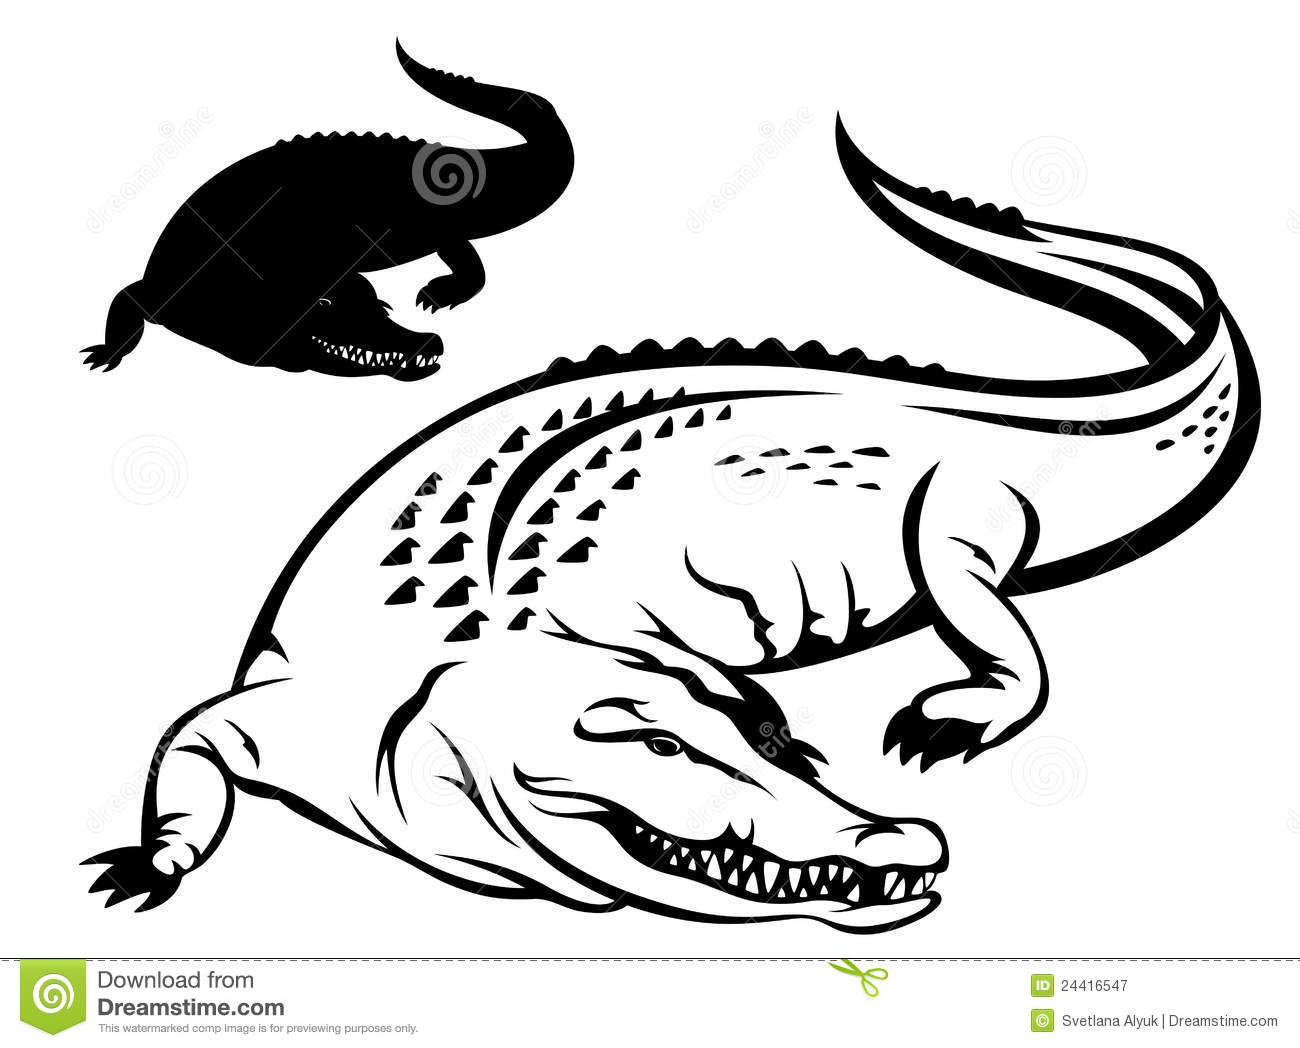 Crocodile Illustration   Black And White Outline And Silhouette